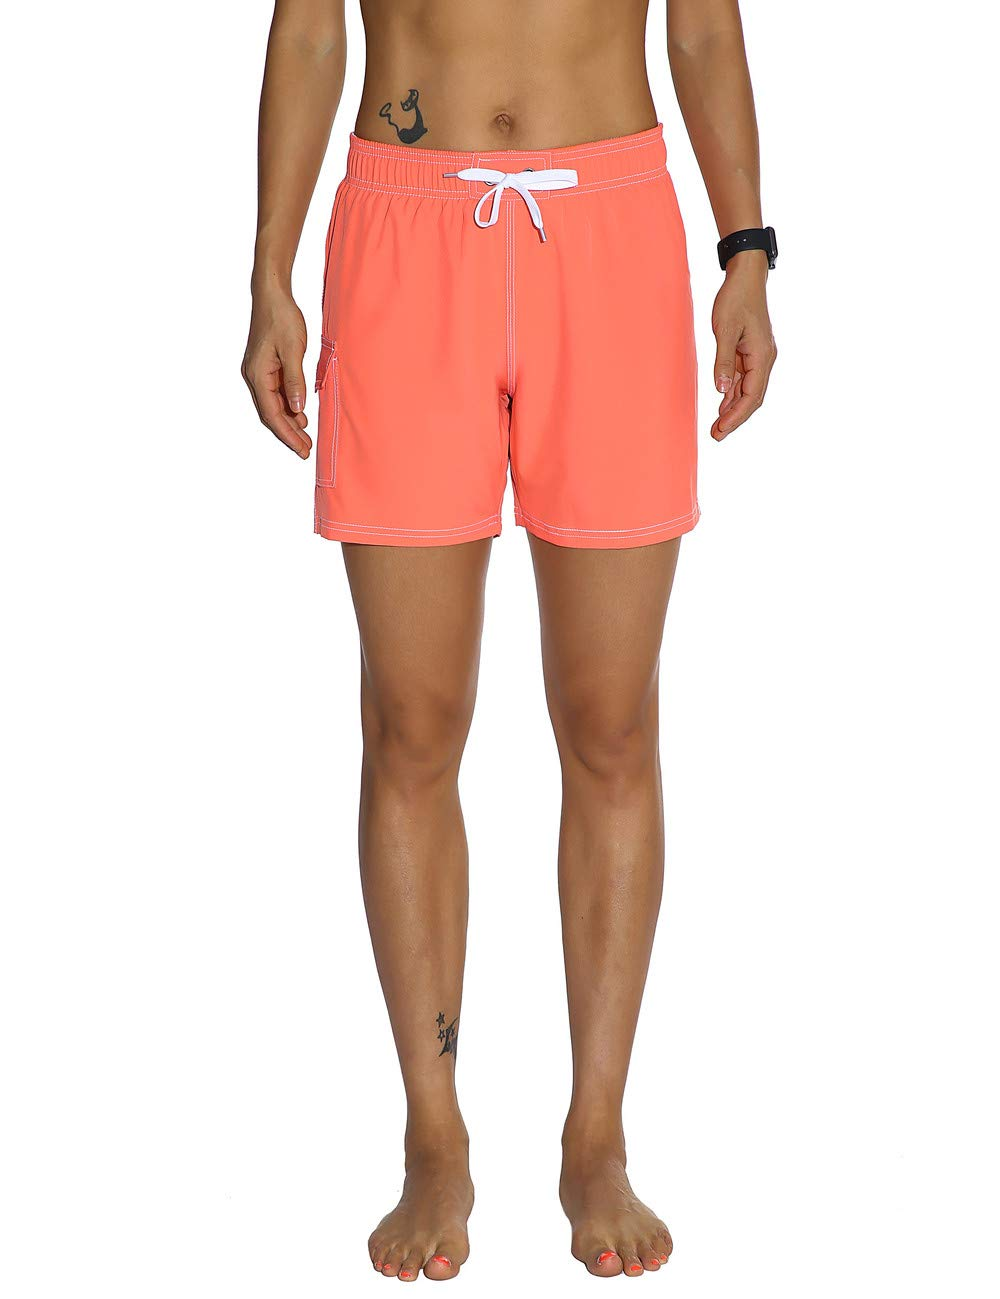 orange(Side Velcro Pocket) Unitop Womens Bathing Boardshorts Swim Shorts Quick Dry with Mesh Lining